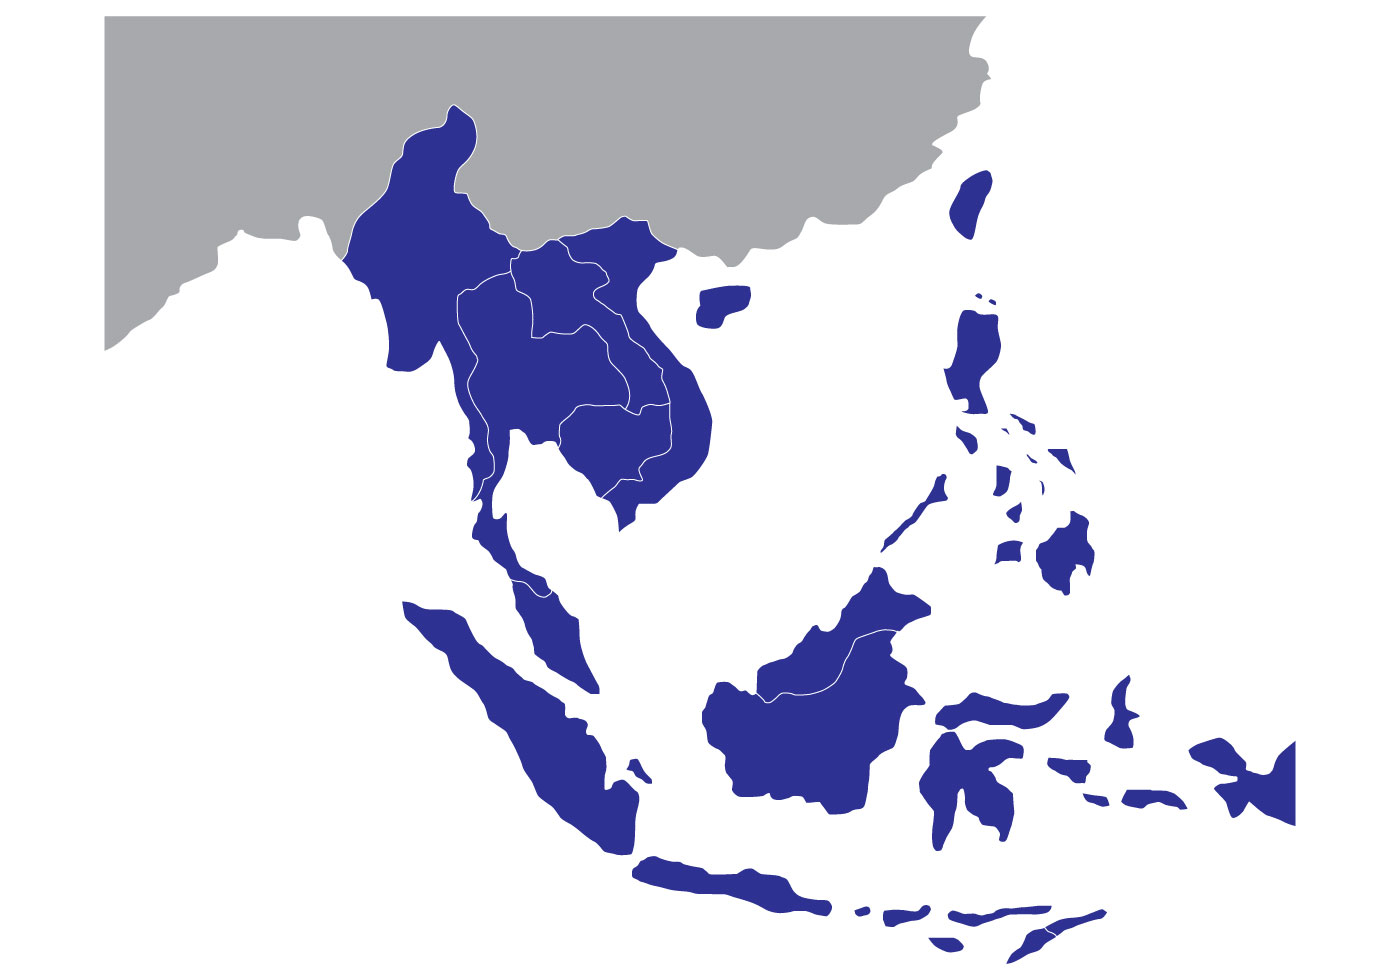 1400x980 South East Asia Free Vector Art